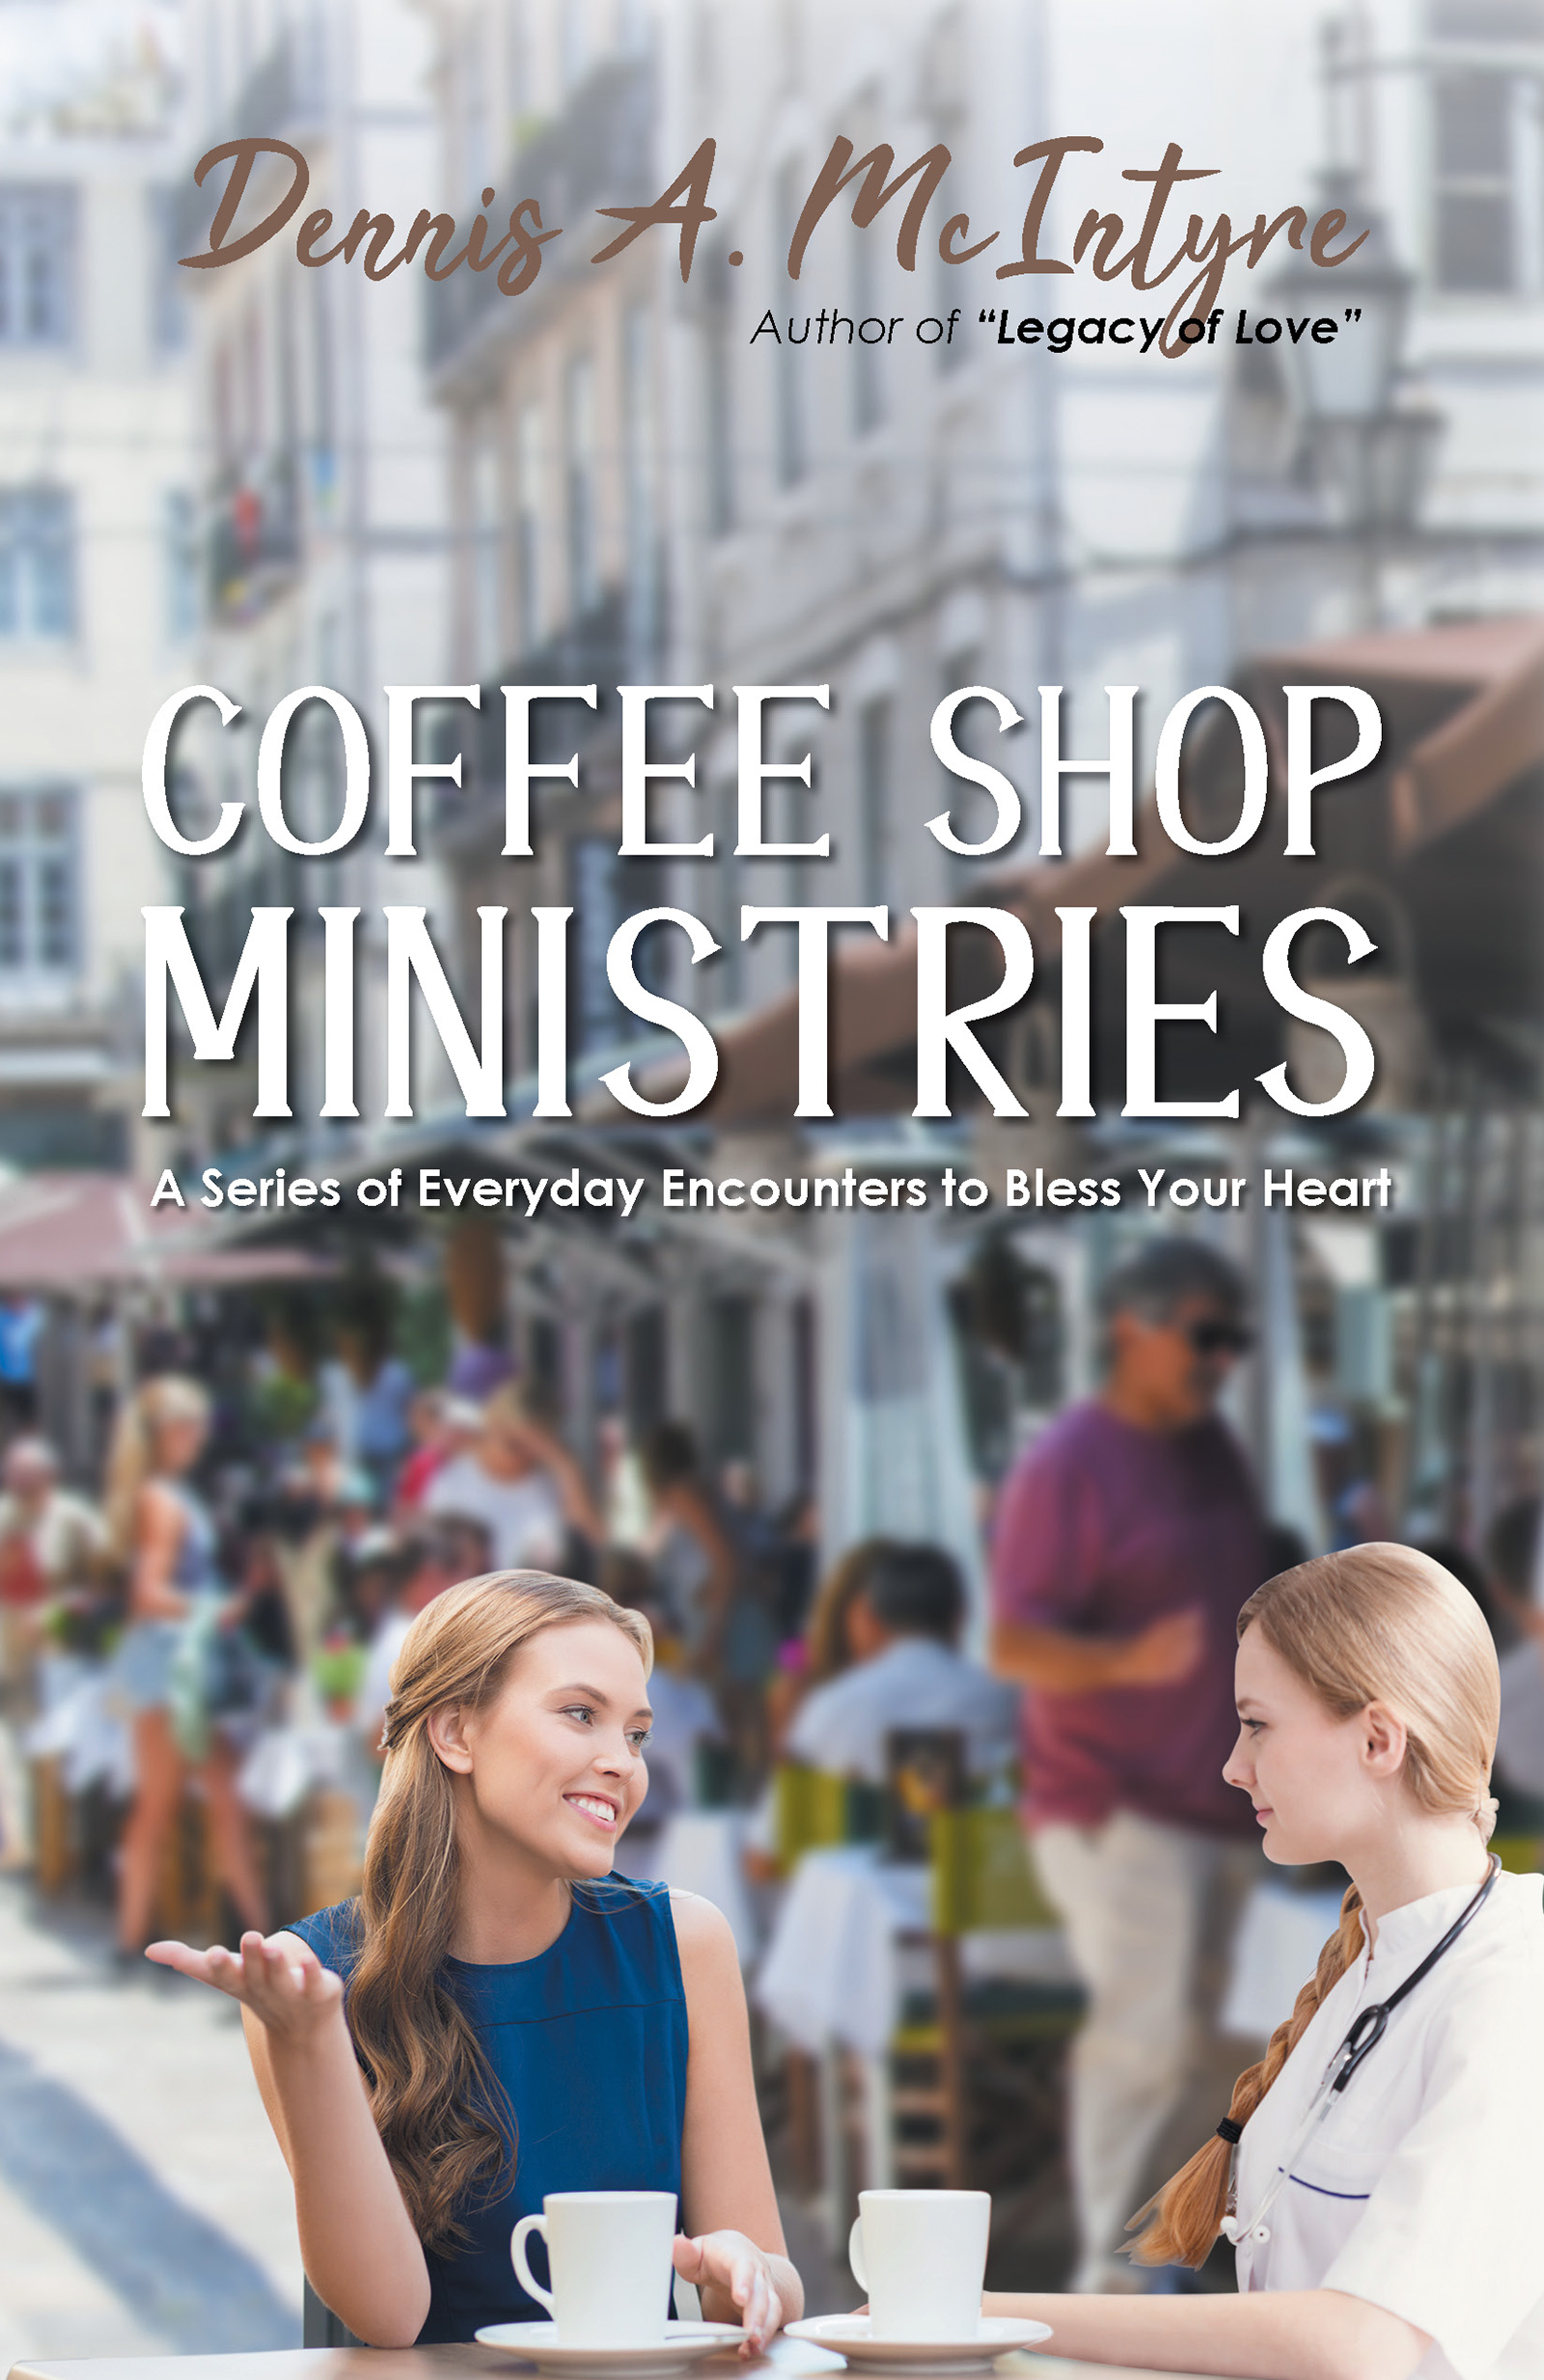 Coffee Shop Ministries by Dennis A. McIntyre Available on Amazon!